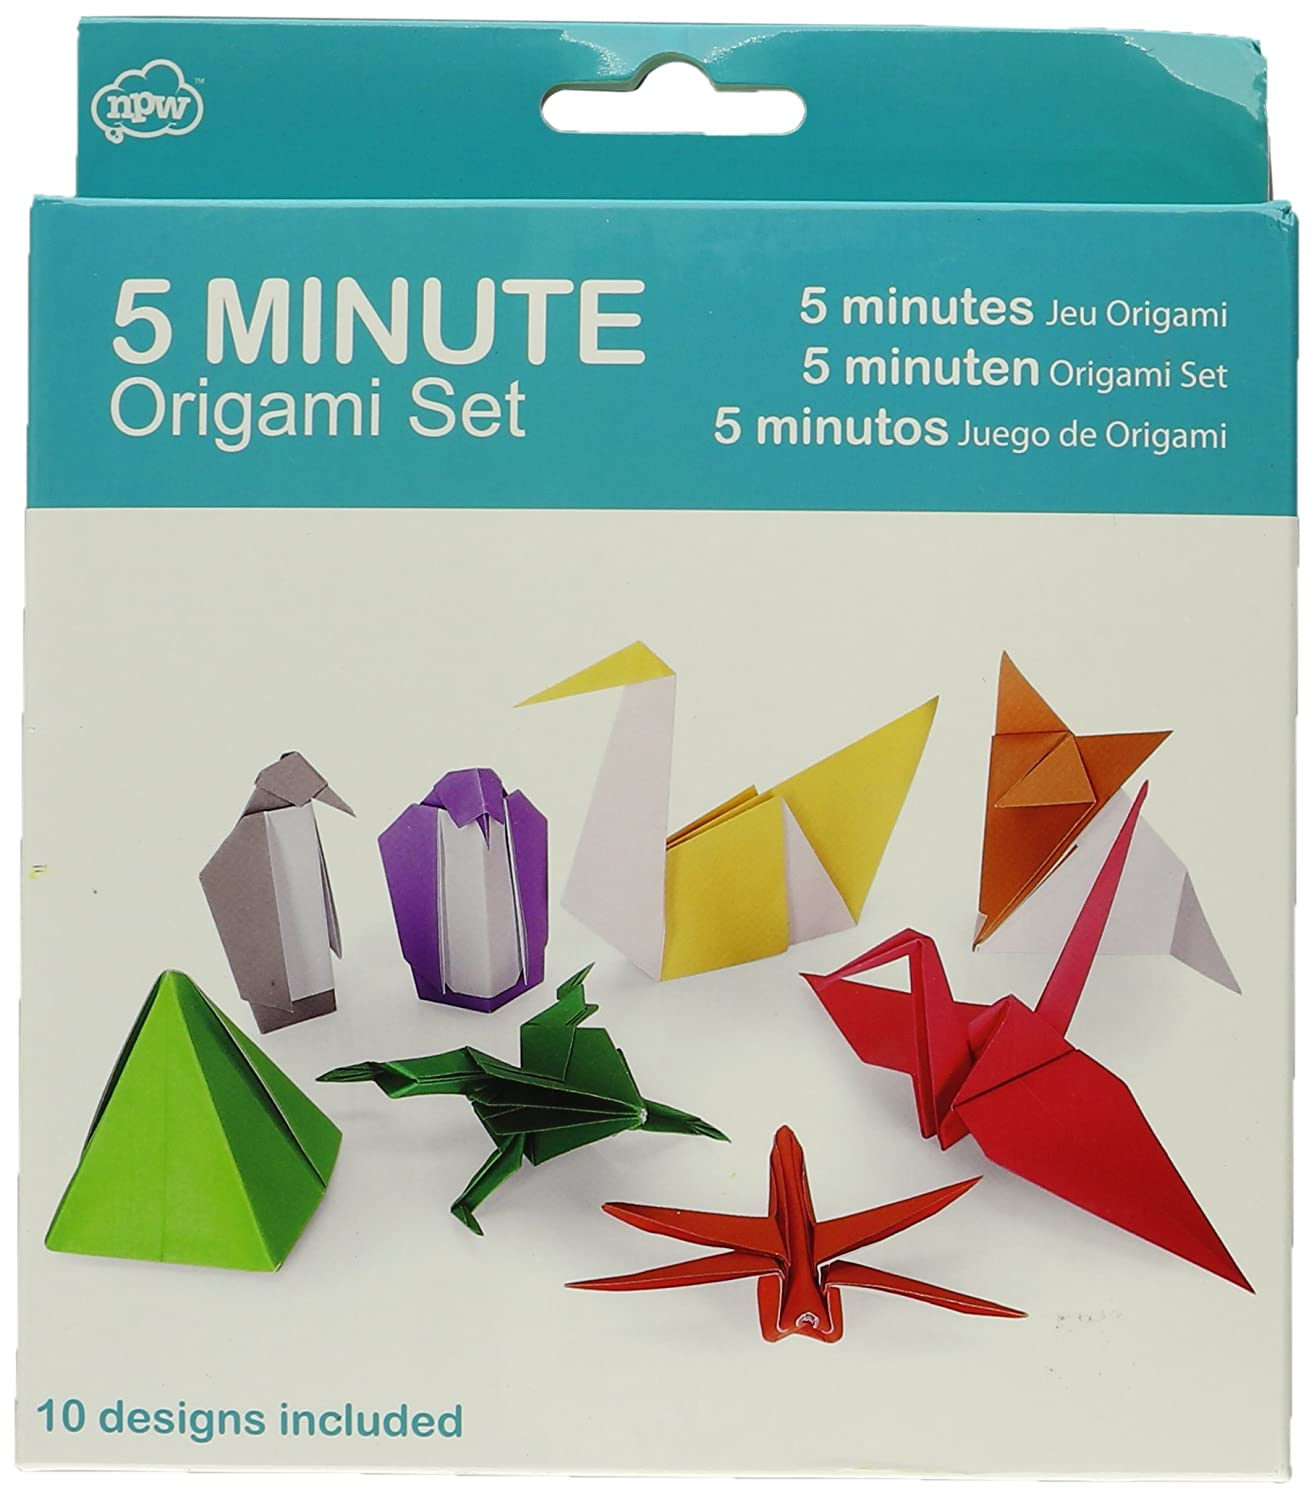 Npw Origami Set 5 Minute Amazon Toys Games